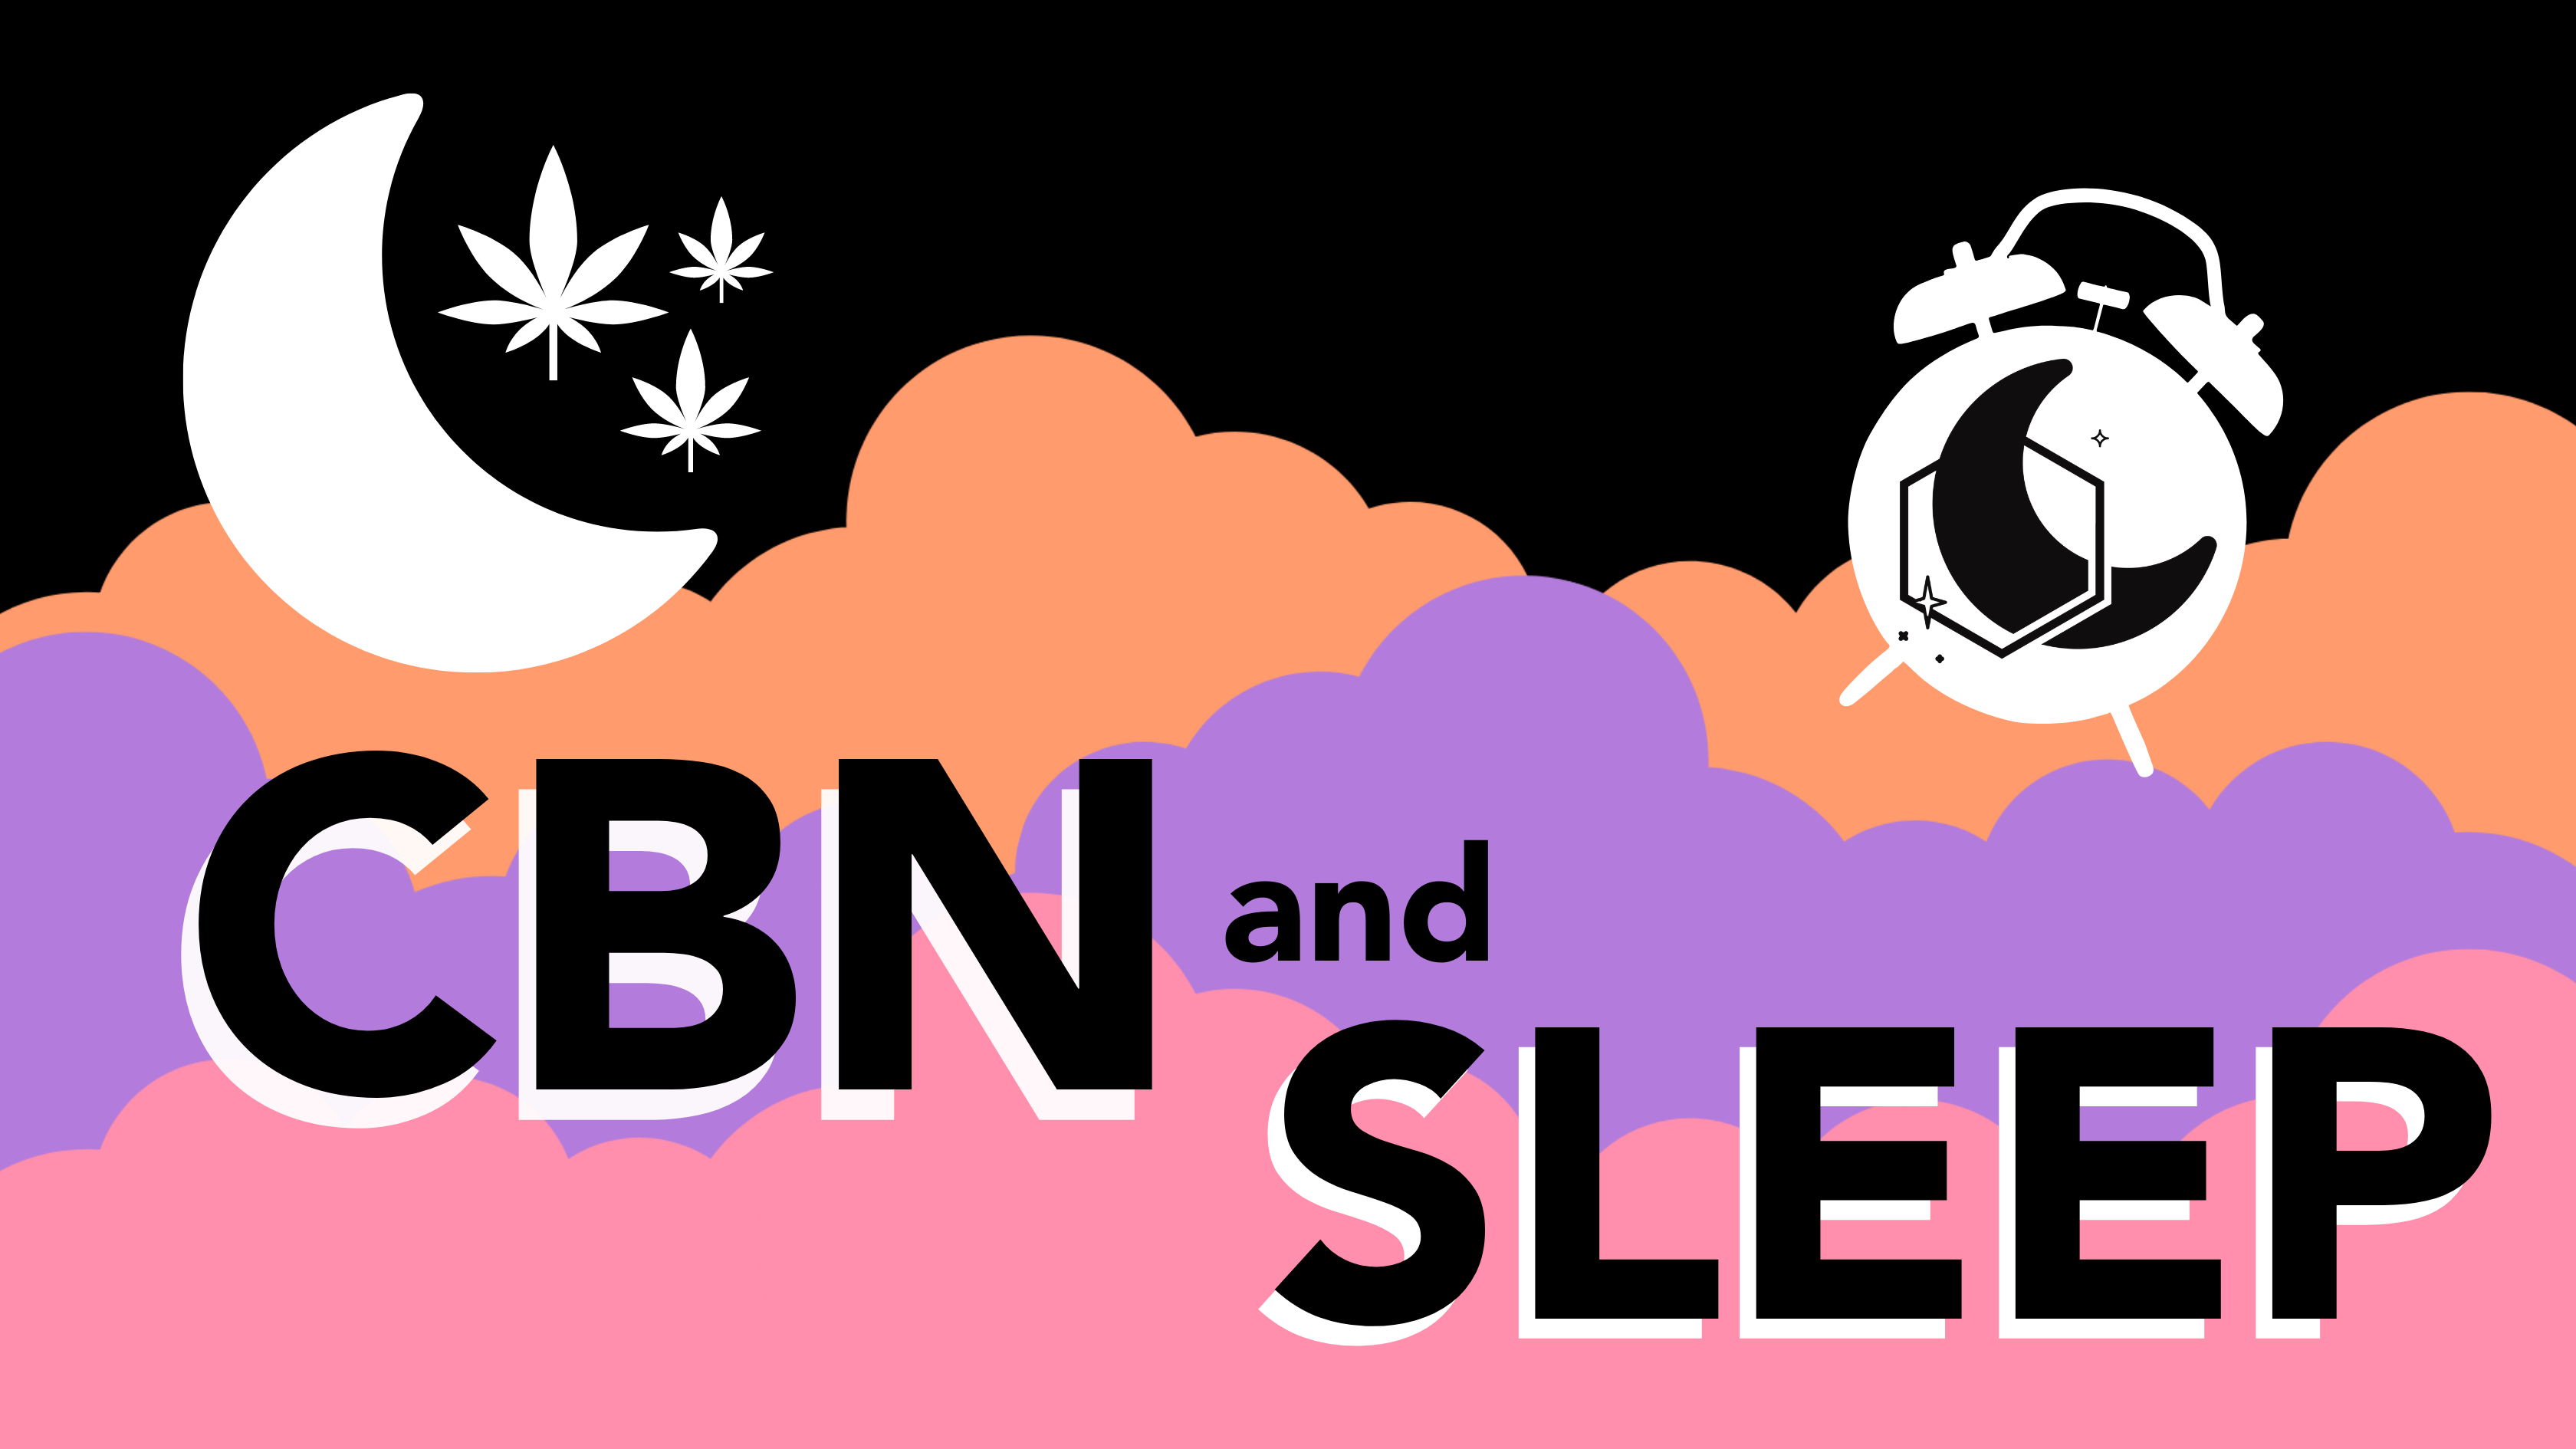 CBN AND SLEEP